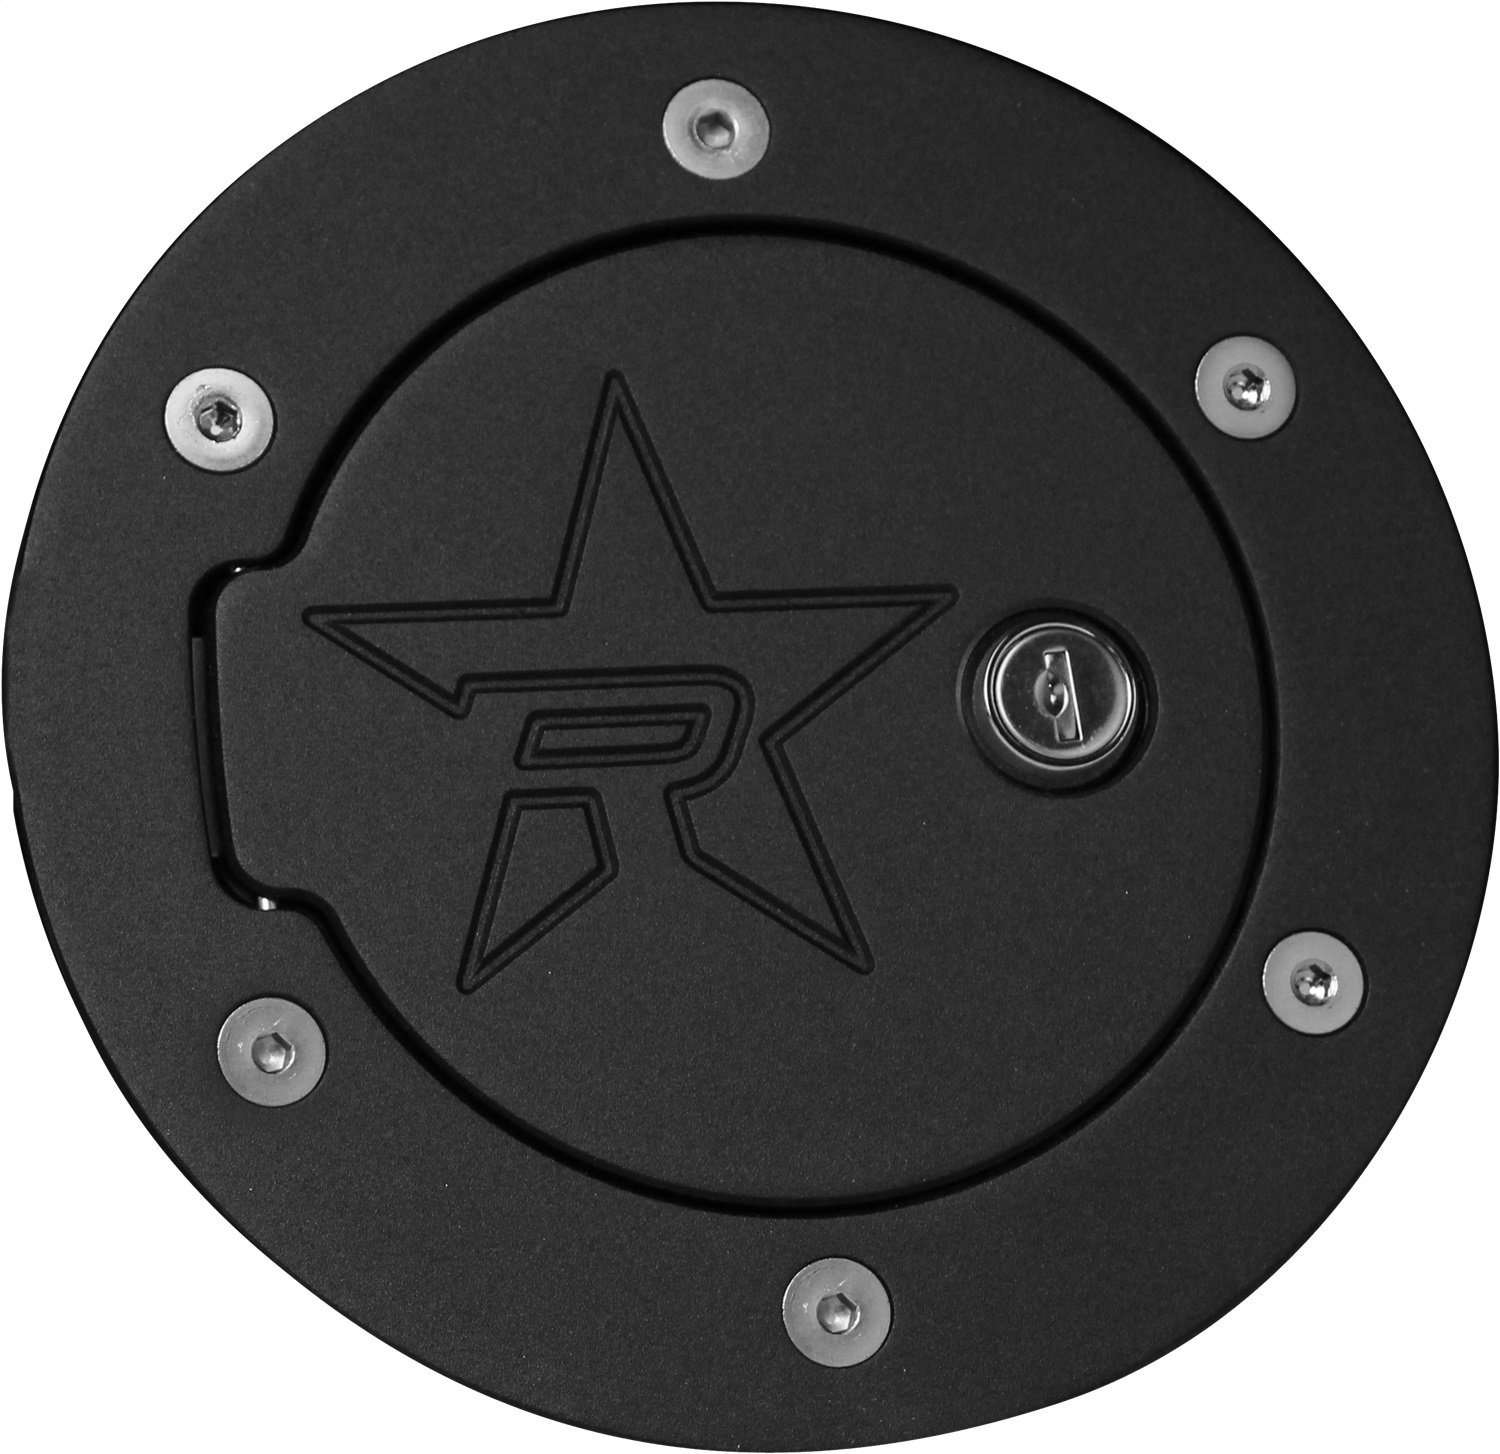 RBP RBP-6042KL-RX2 Black Locking Fuel Door